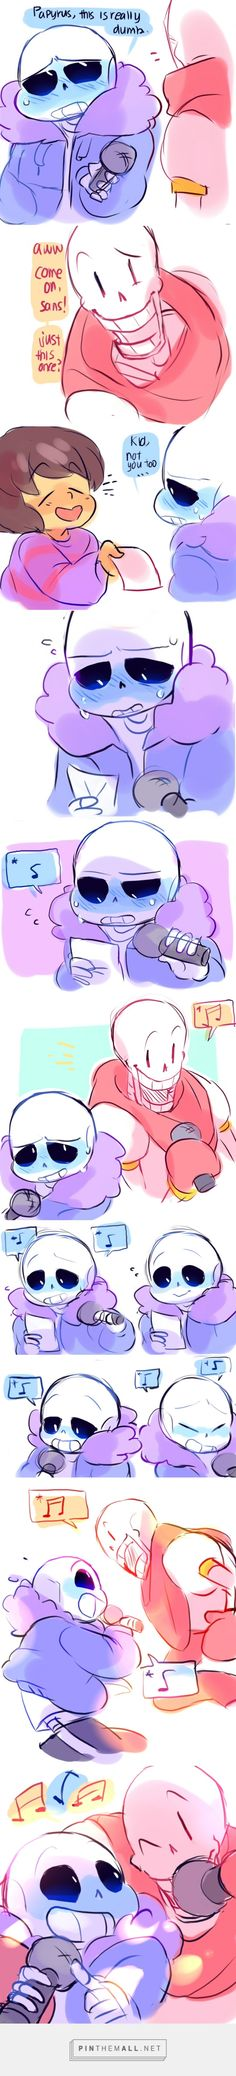 Sans and Papyrus - karaoke - comic<<< Play the drop pop candy sans & papyrus version while scrolling thought this!